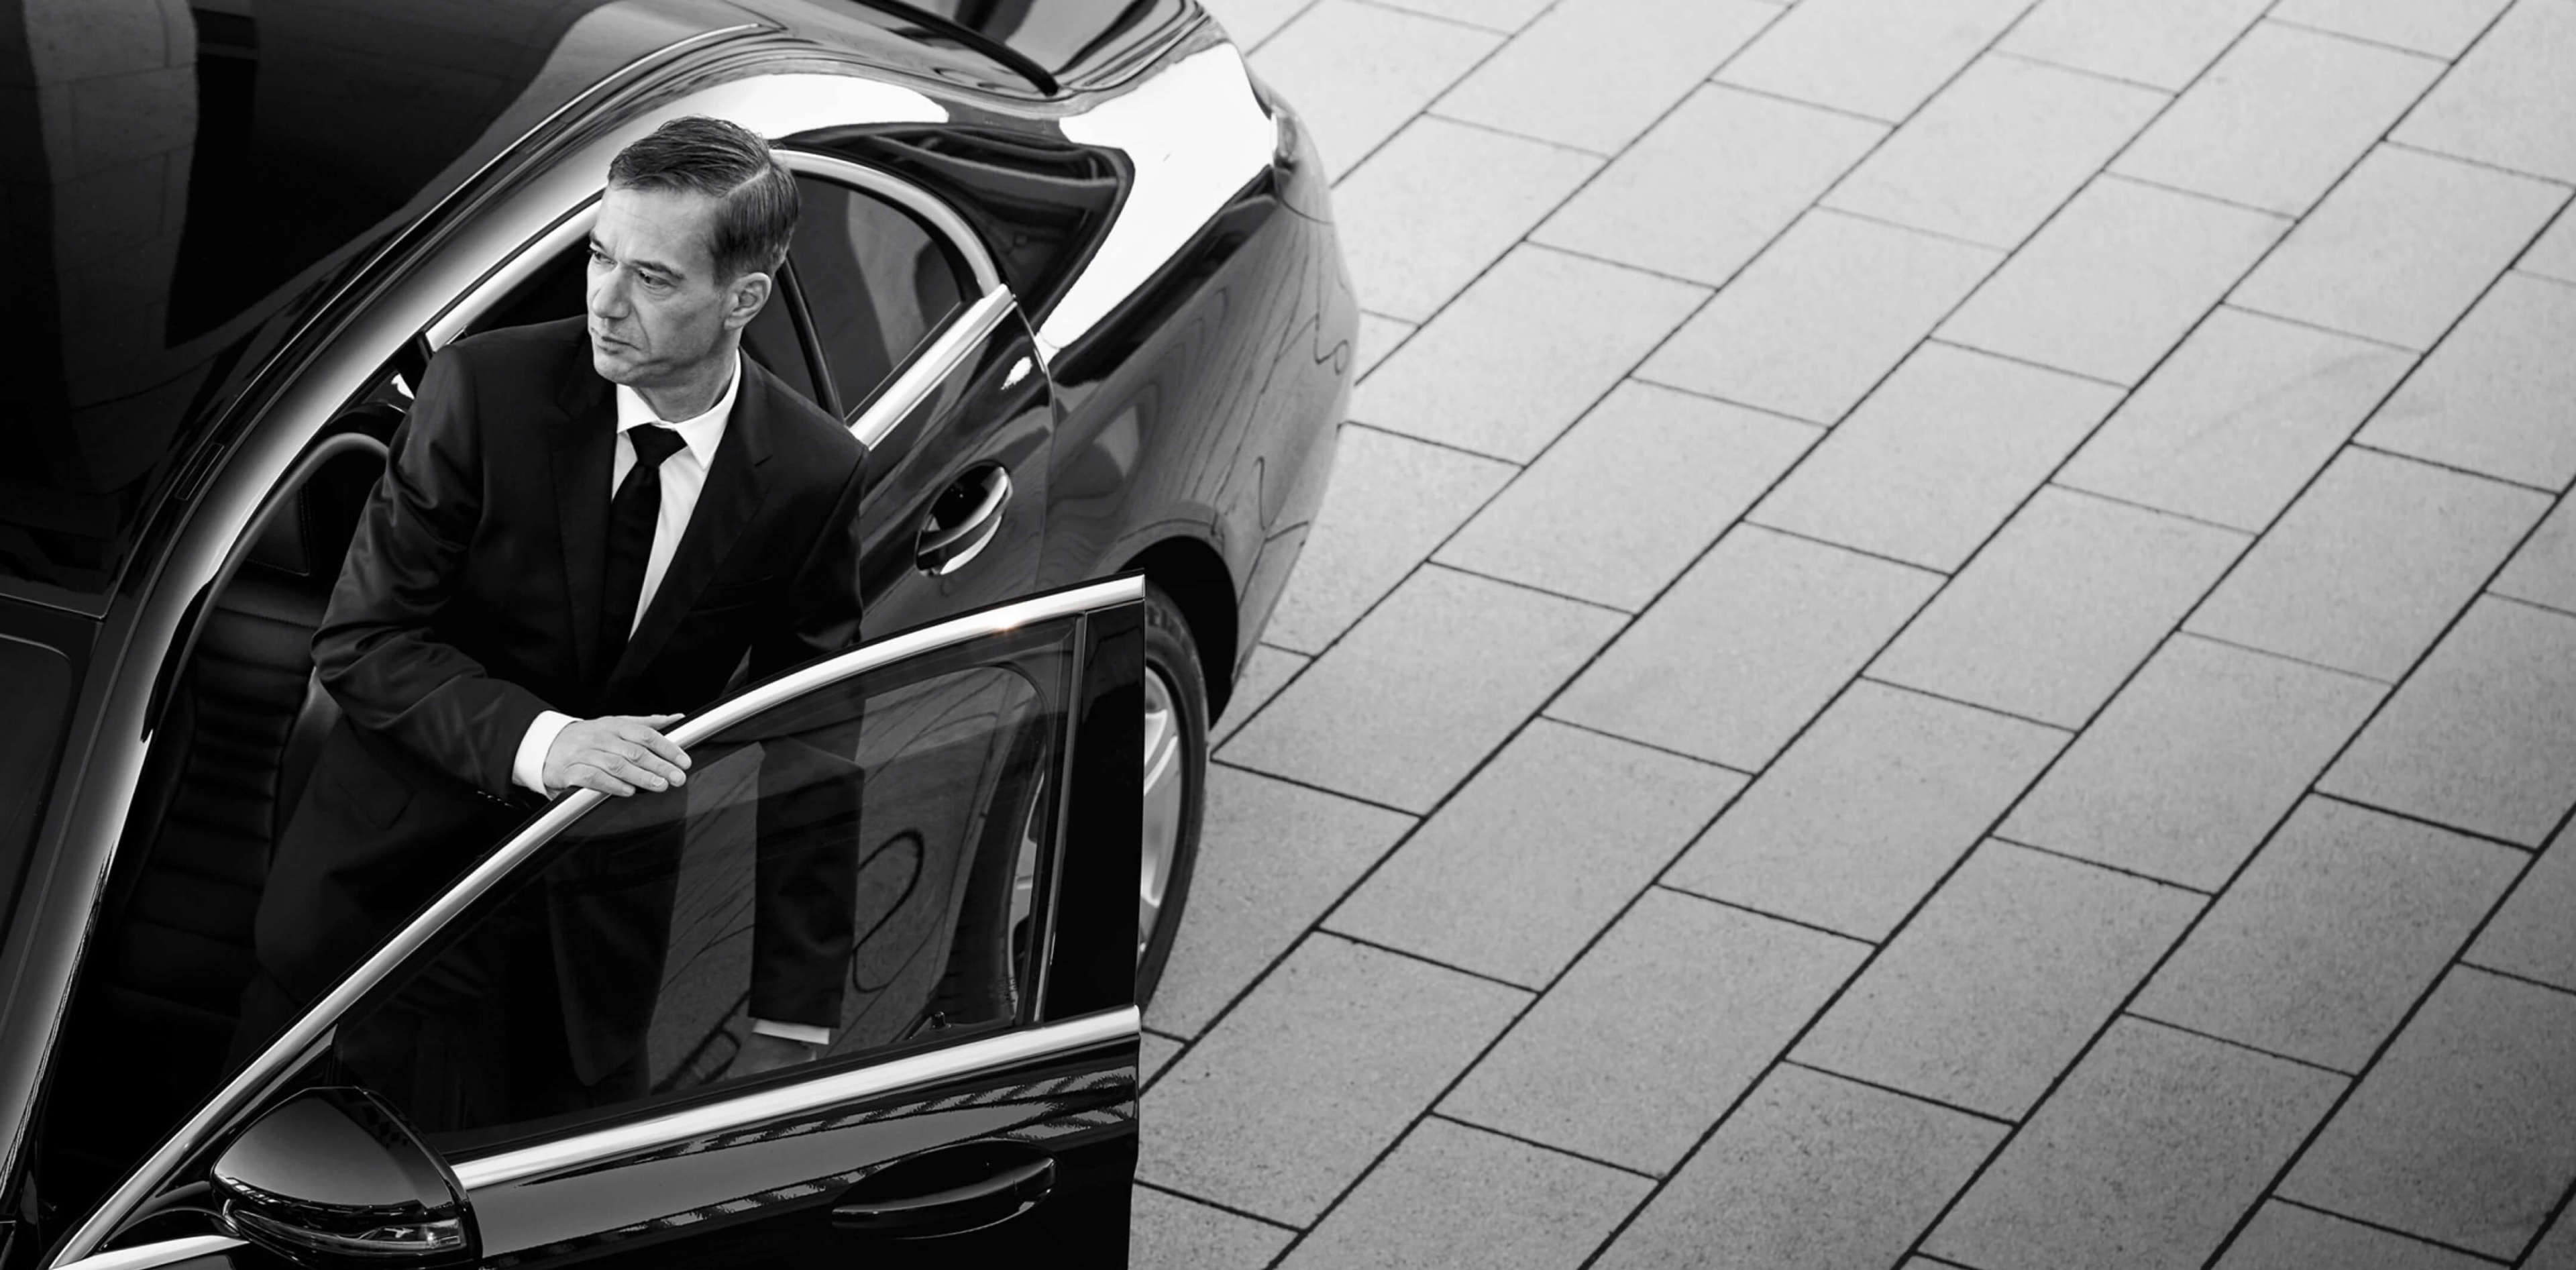 Real Blacklane chauffeur Peter rests his hand on the door of his spotless Mercedes, ready to get into the driver's seat.